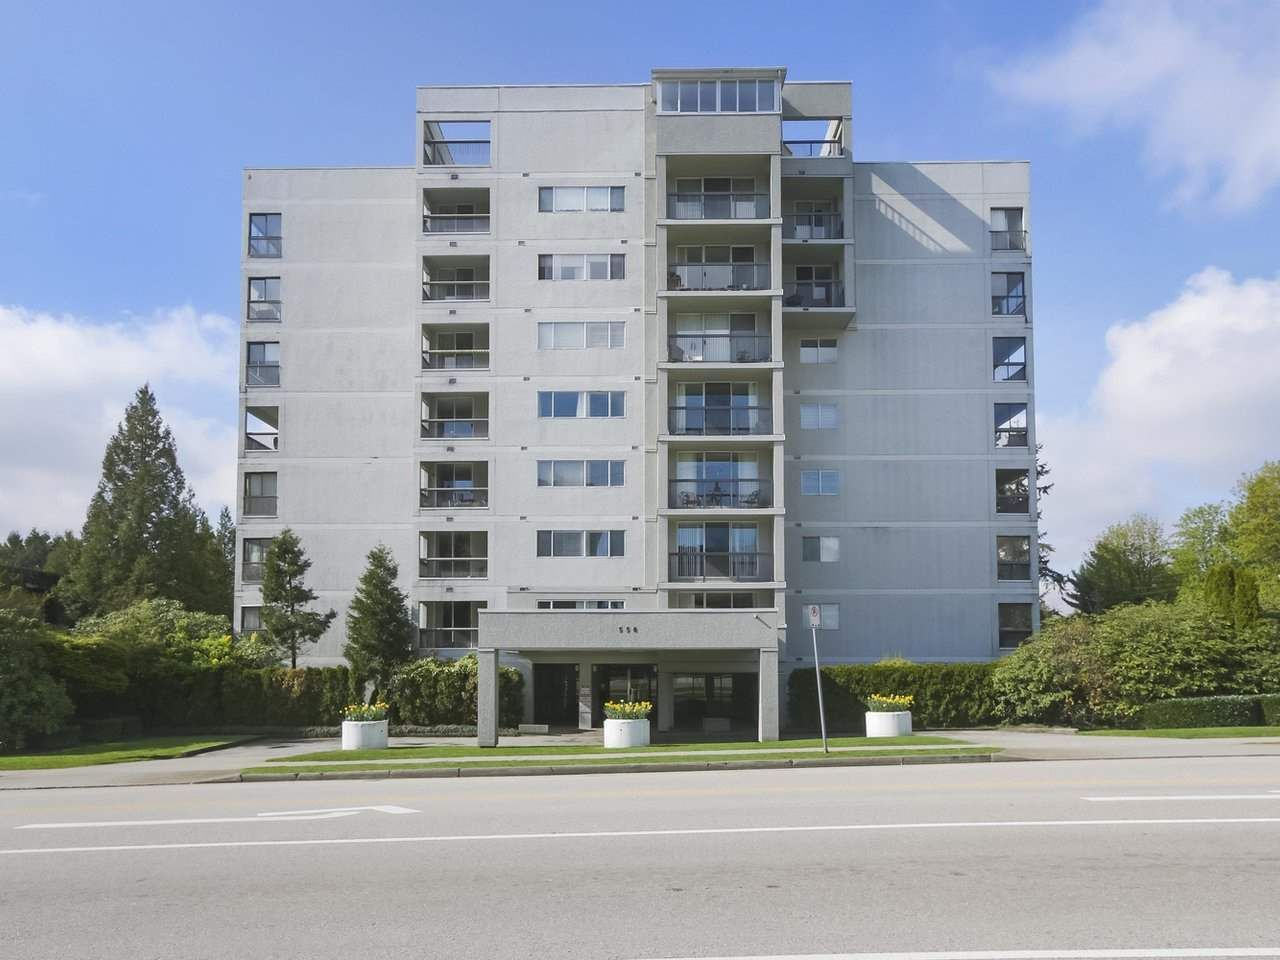 """Main Photo: 801 550 EIGHTH Street in New Westminster: Uptown NW Condo for sale in """"PARKRIDGE"""" : MLS®# R2402744"""